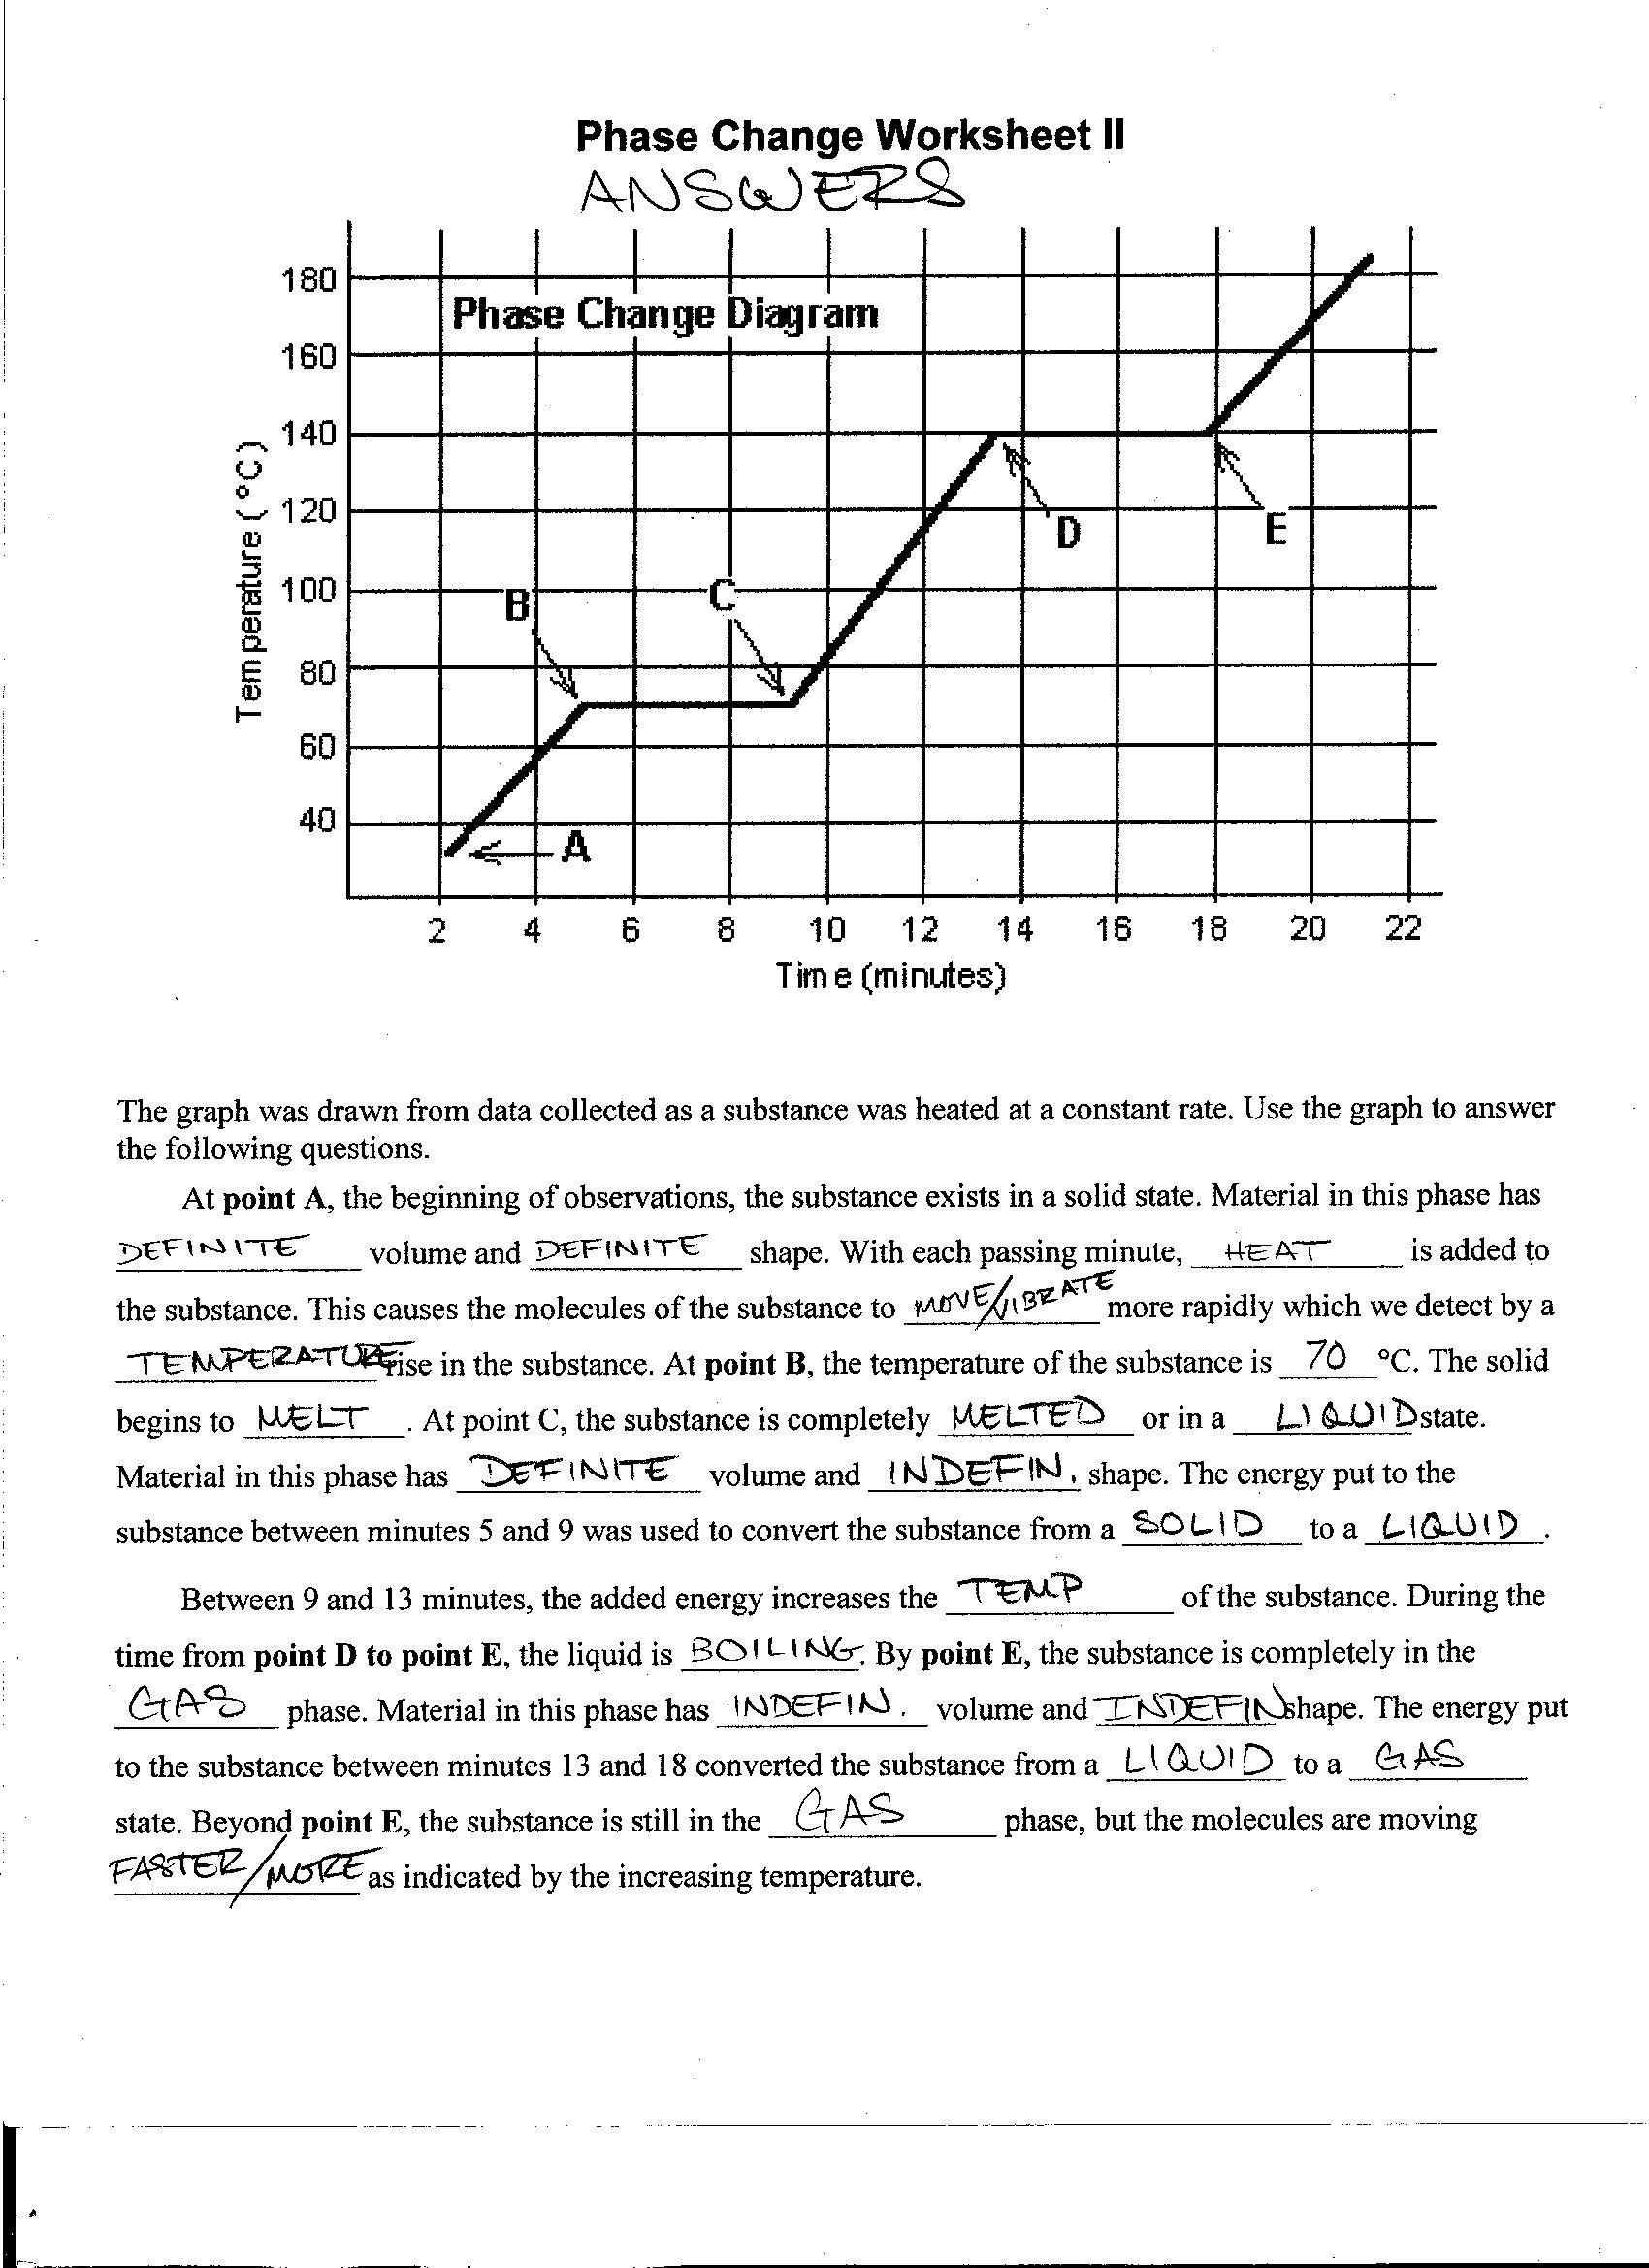 Phase Change Worksheet Answers Foothill High School